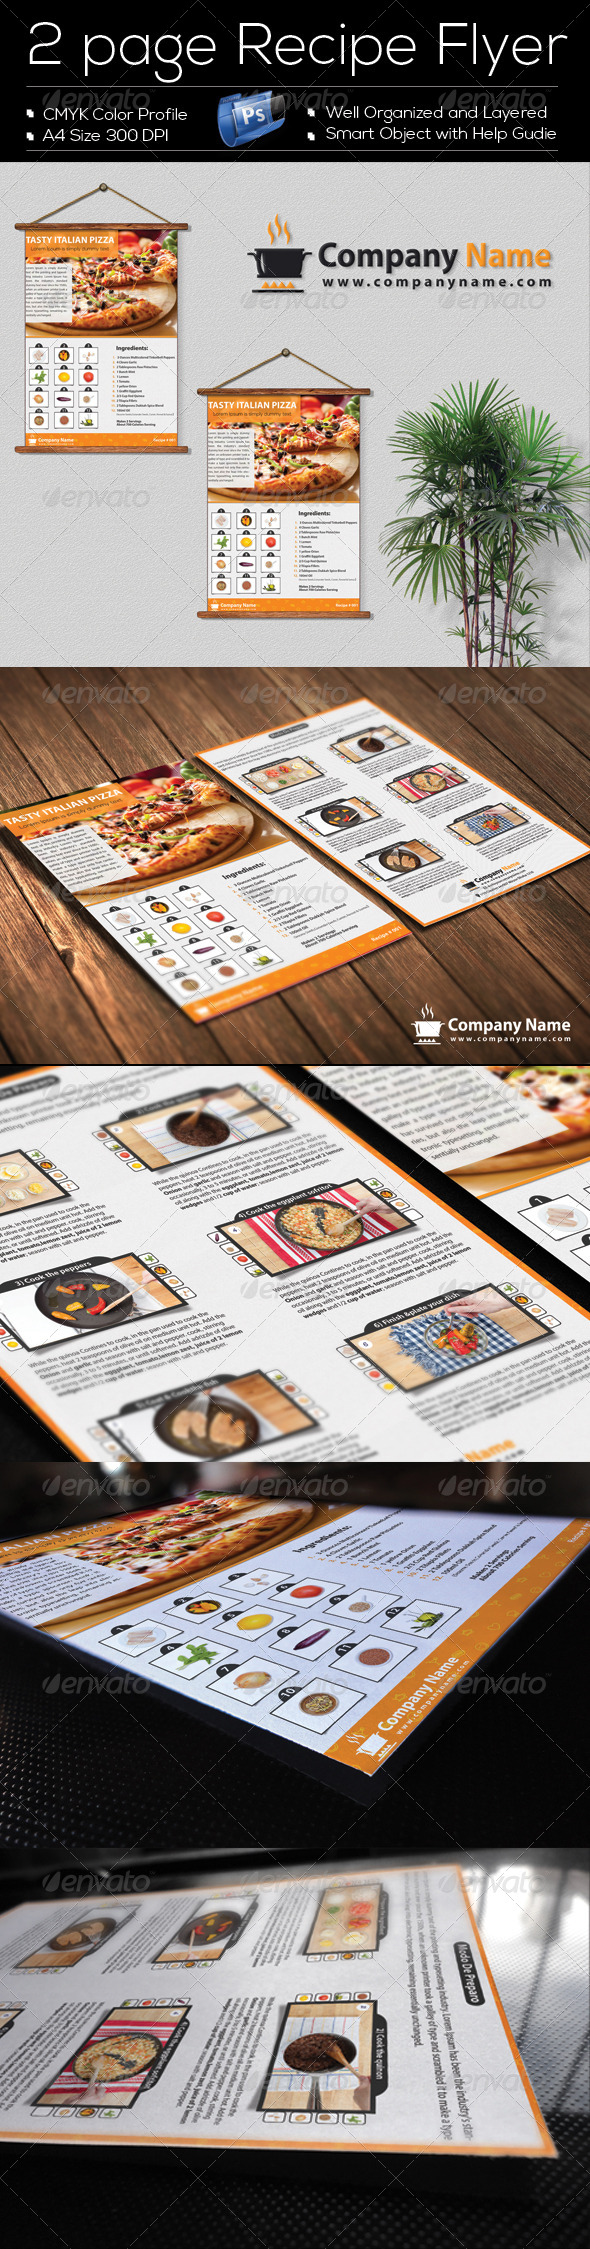 GraphicRiver 2 Page Recipe Flyer Template Design 8325558